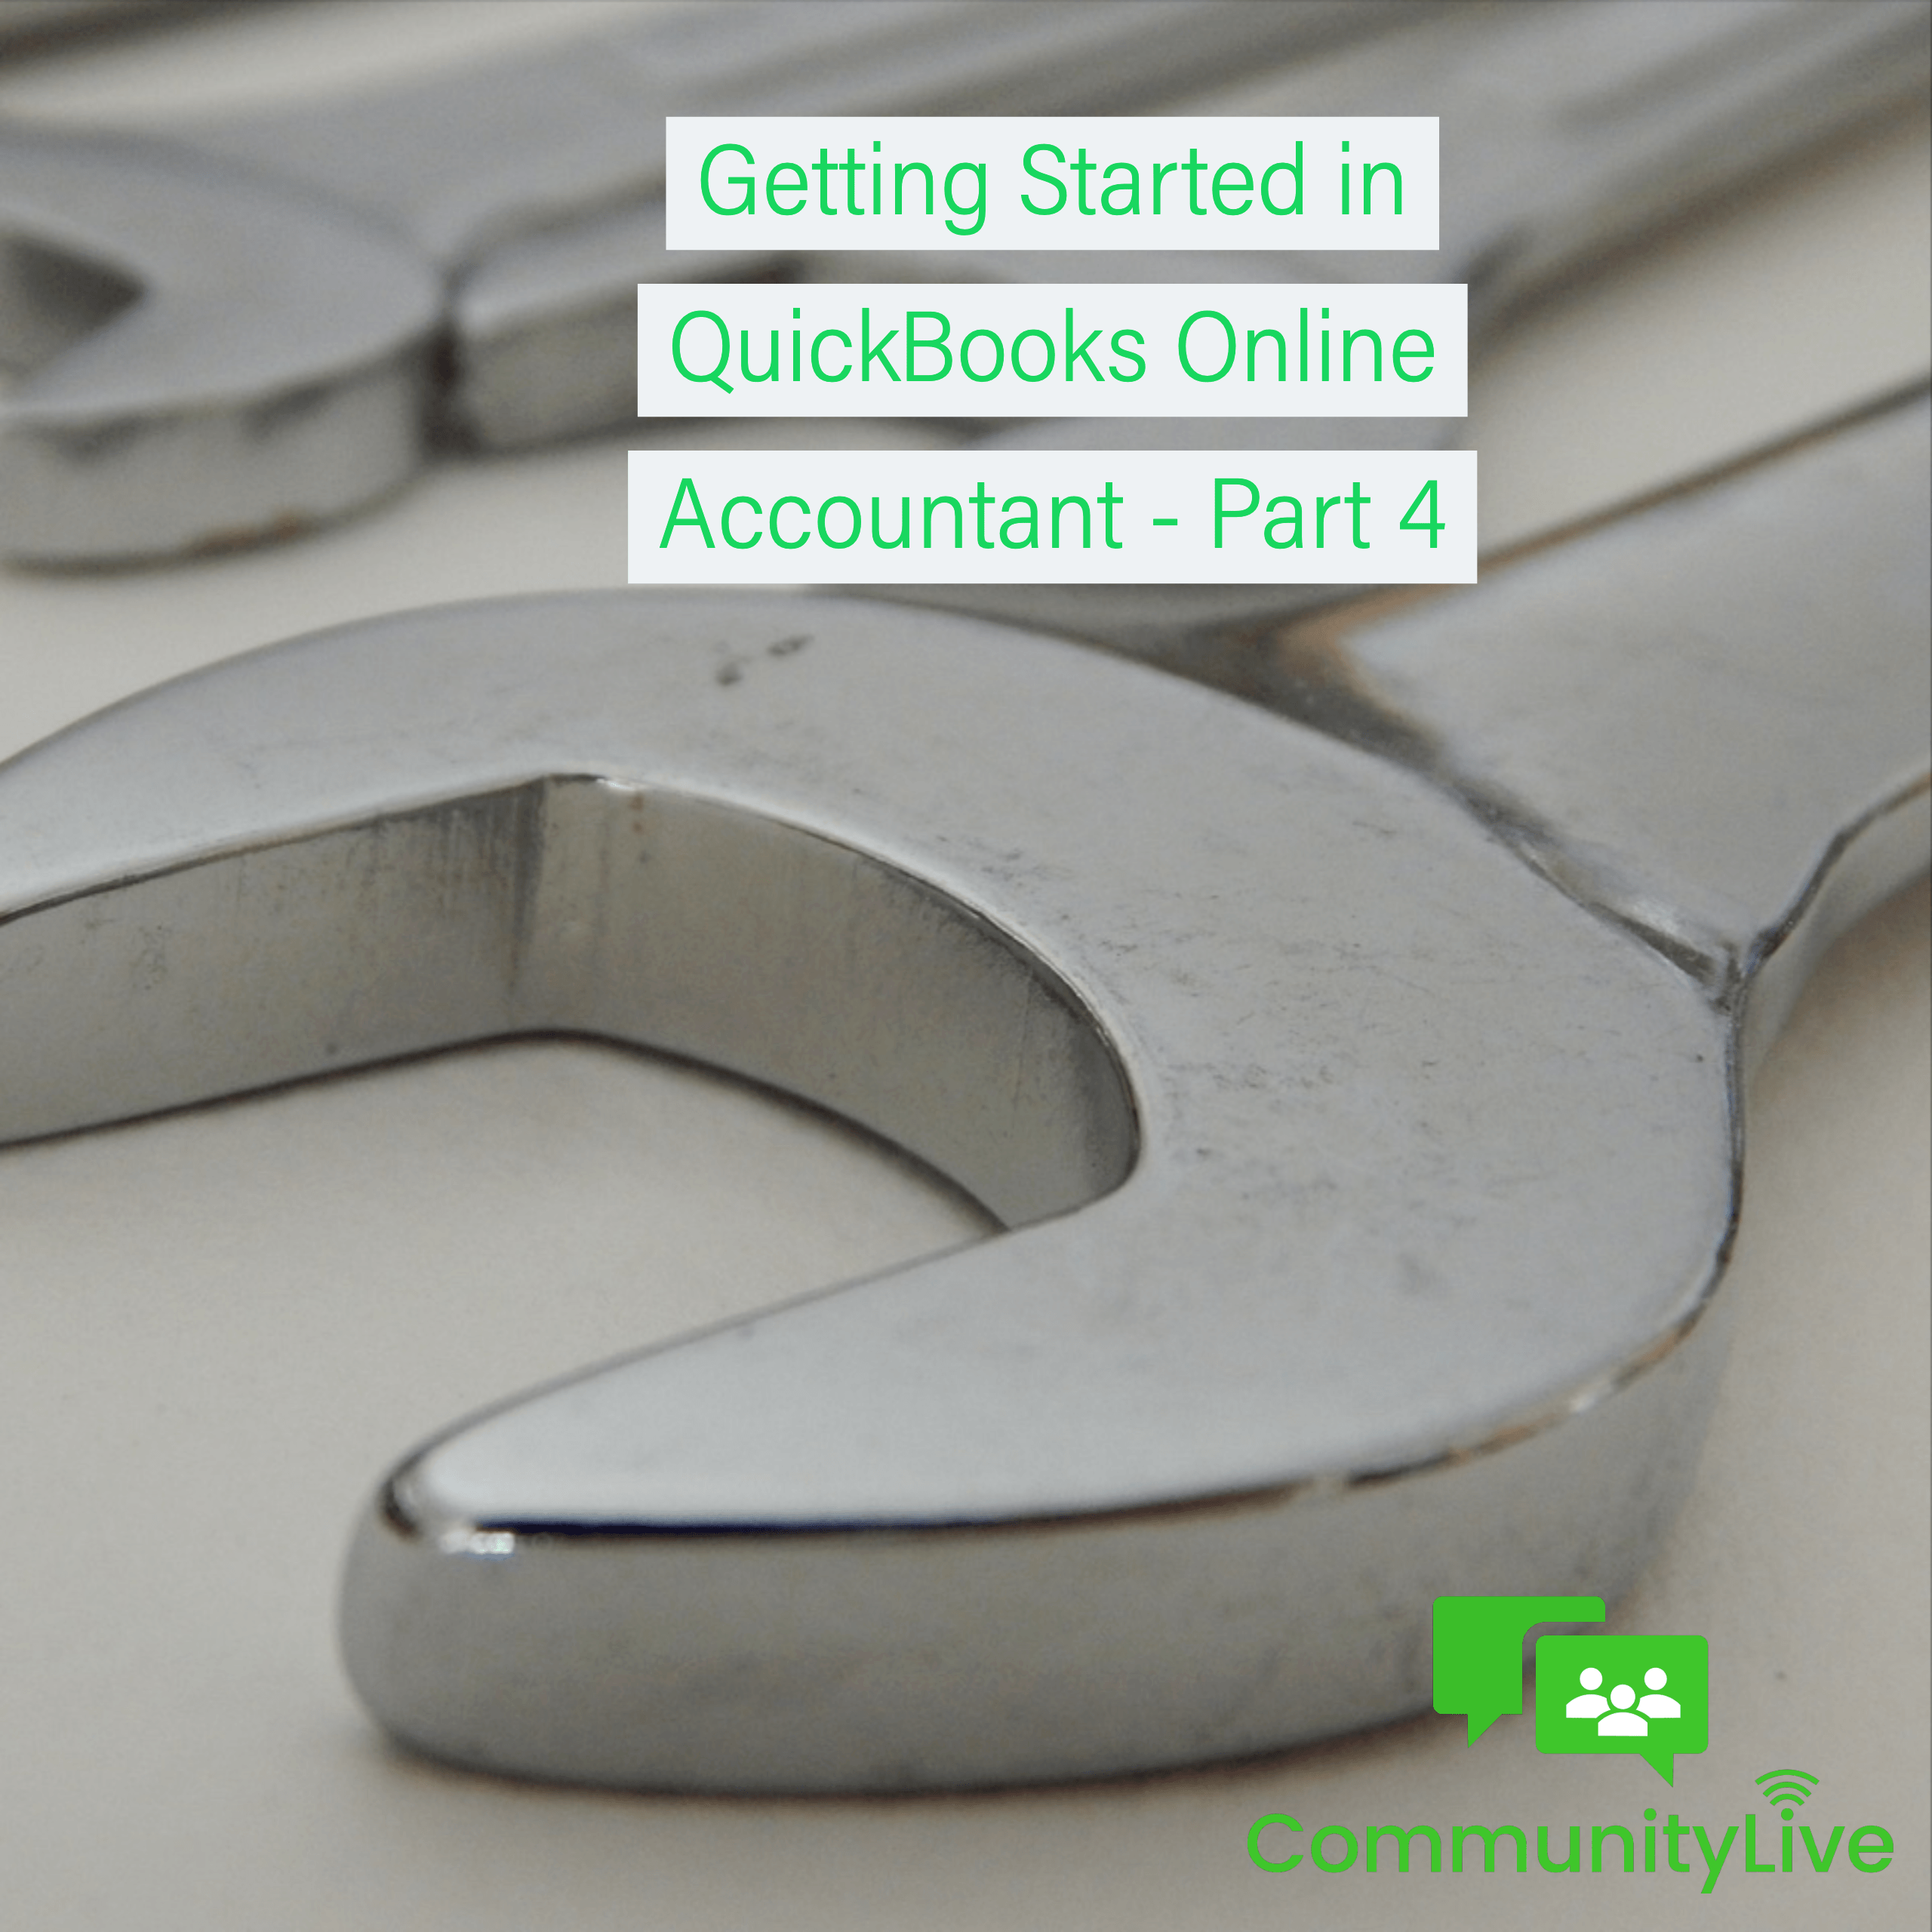 Getting started in Quickbooks online accountant - part 4